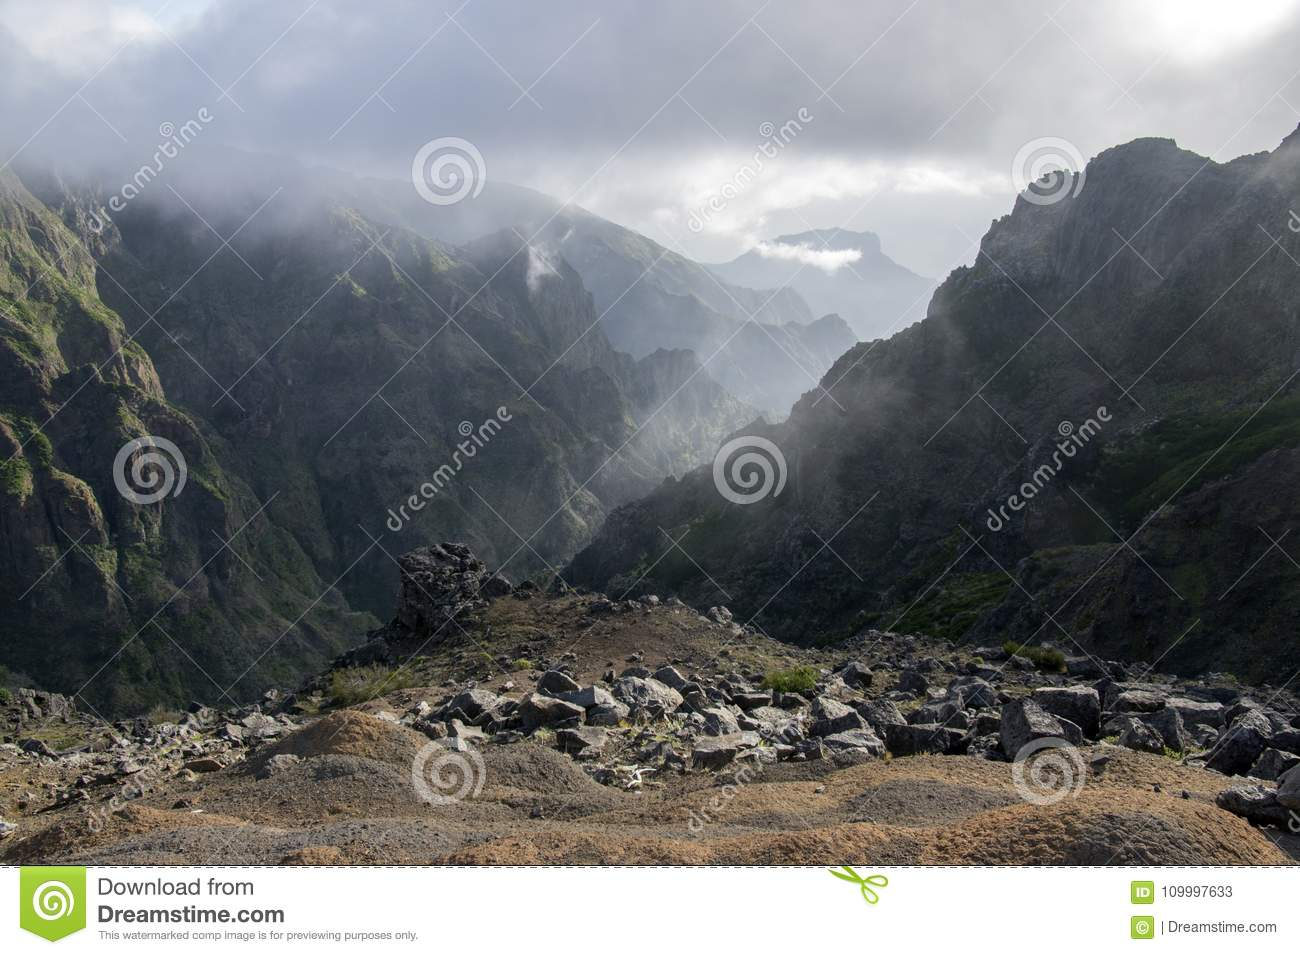 Pico do Arieiro hiking trail, amazing magic landscape with incredible views, rocks and mist, view of the valley between rocks